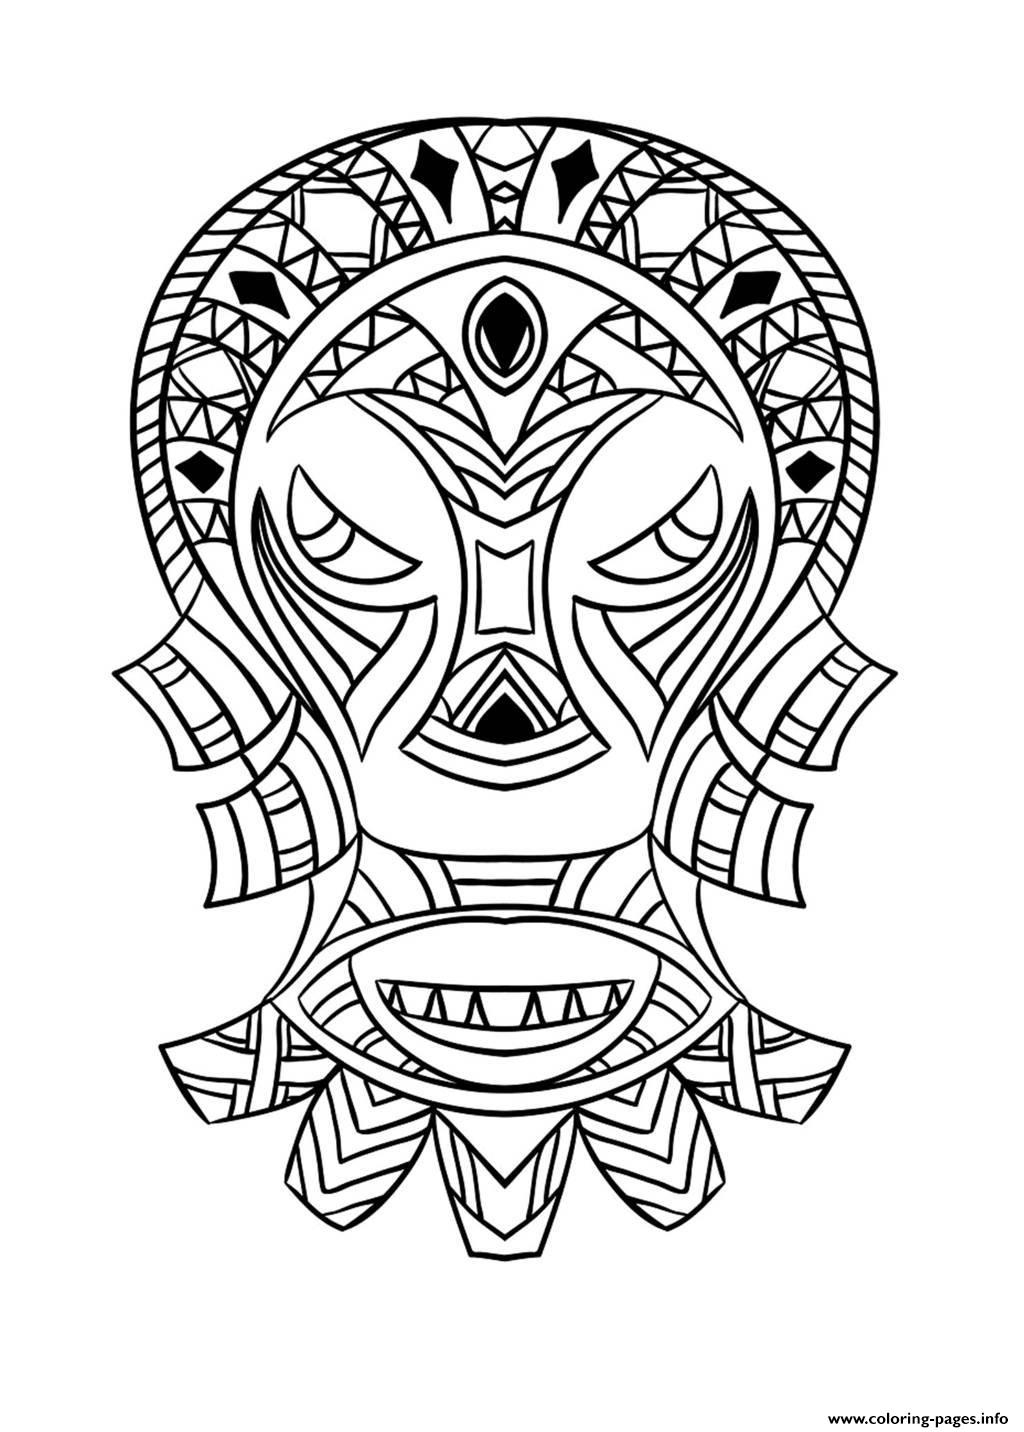 african masks coloring sheets african mask africa adult coloring pages page 2 coloring masks sheets african